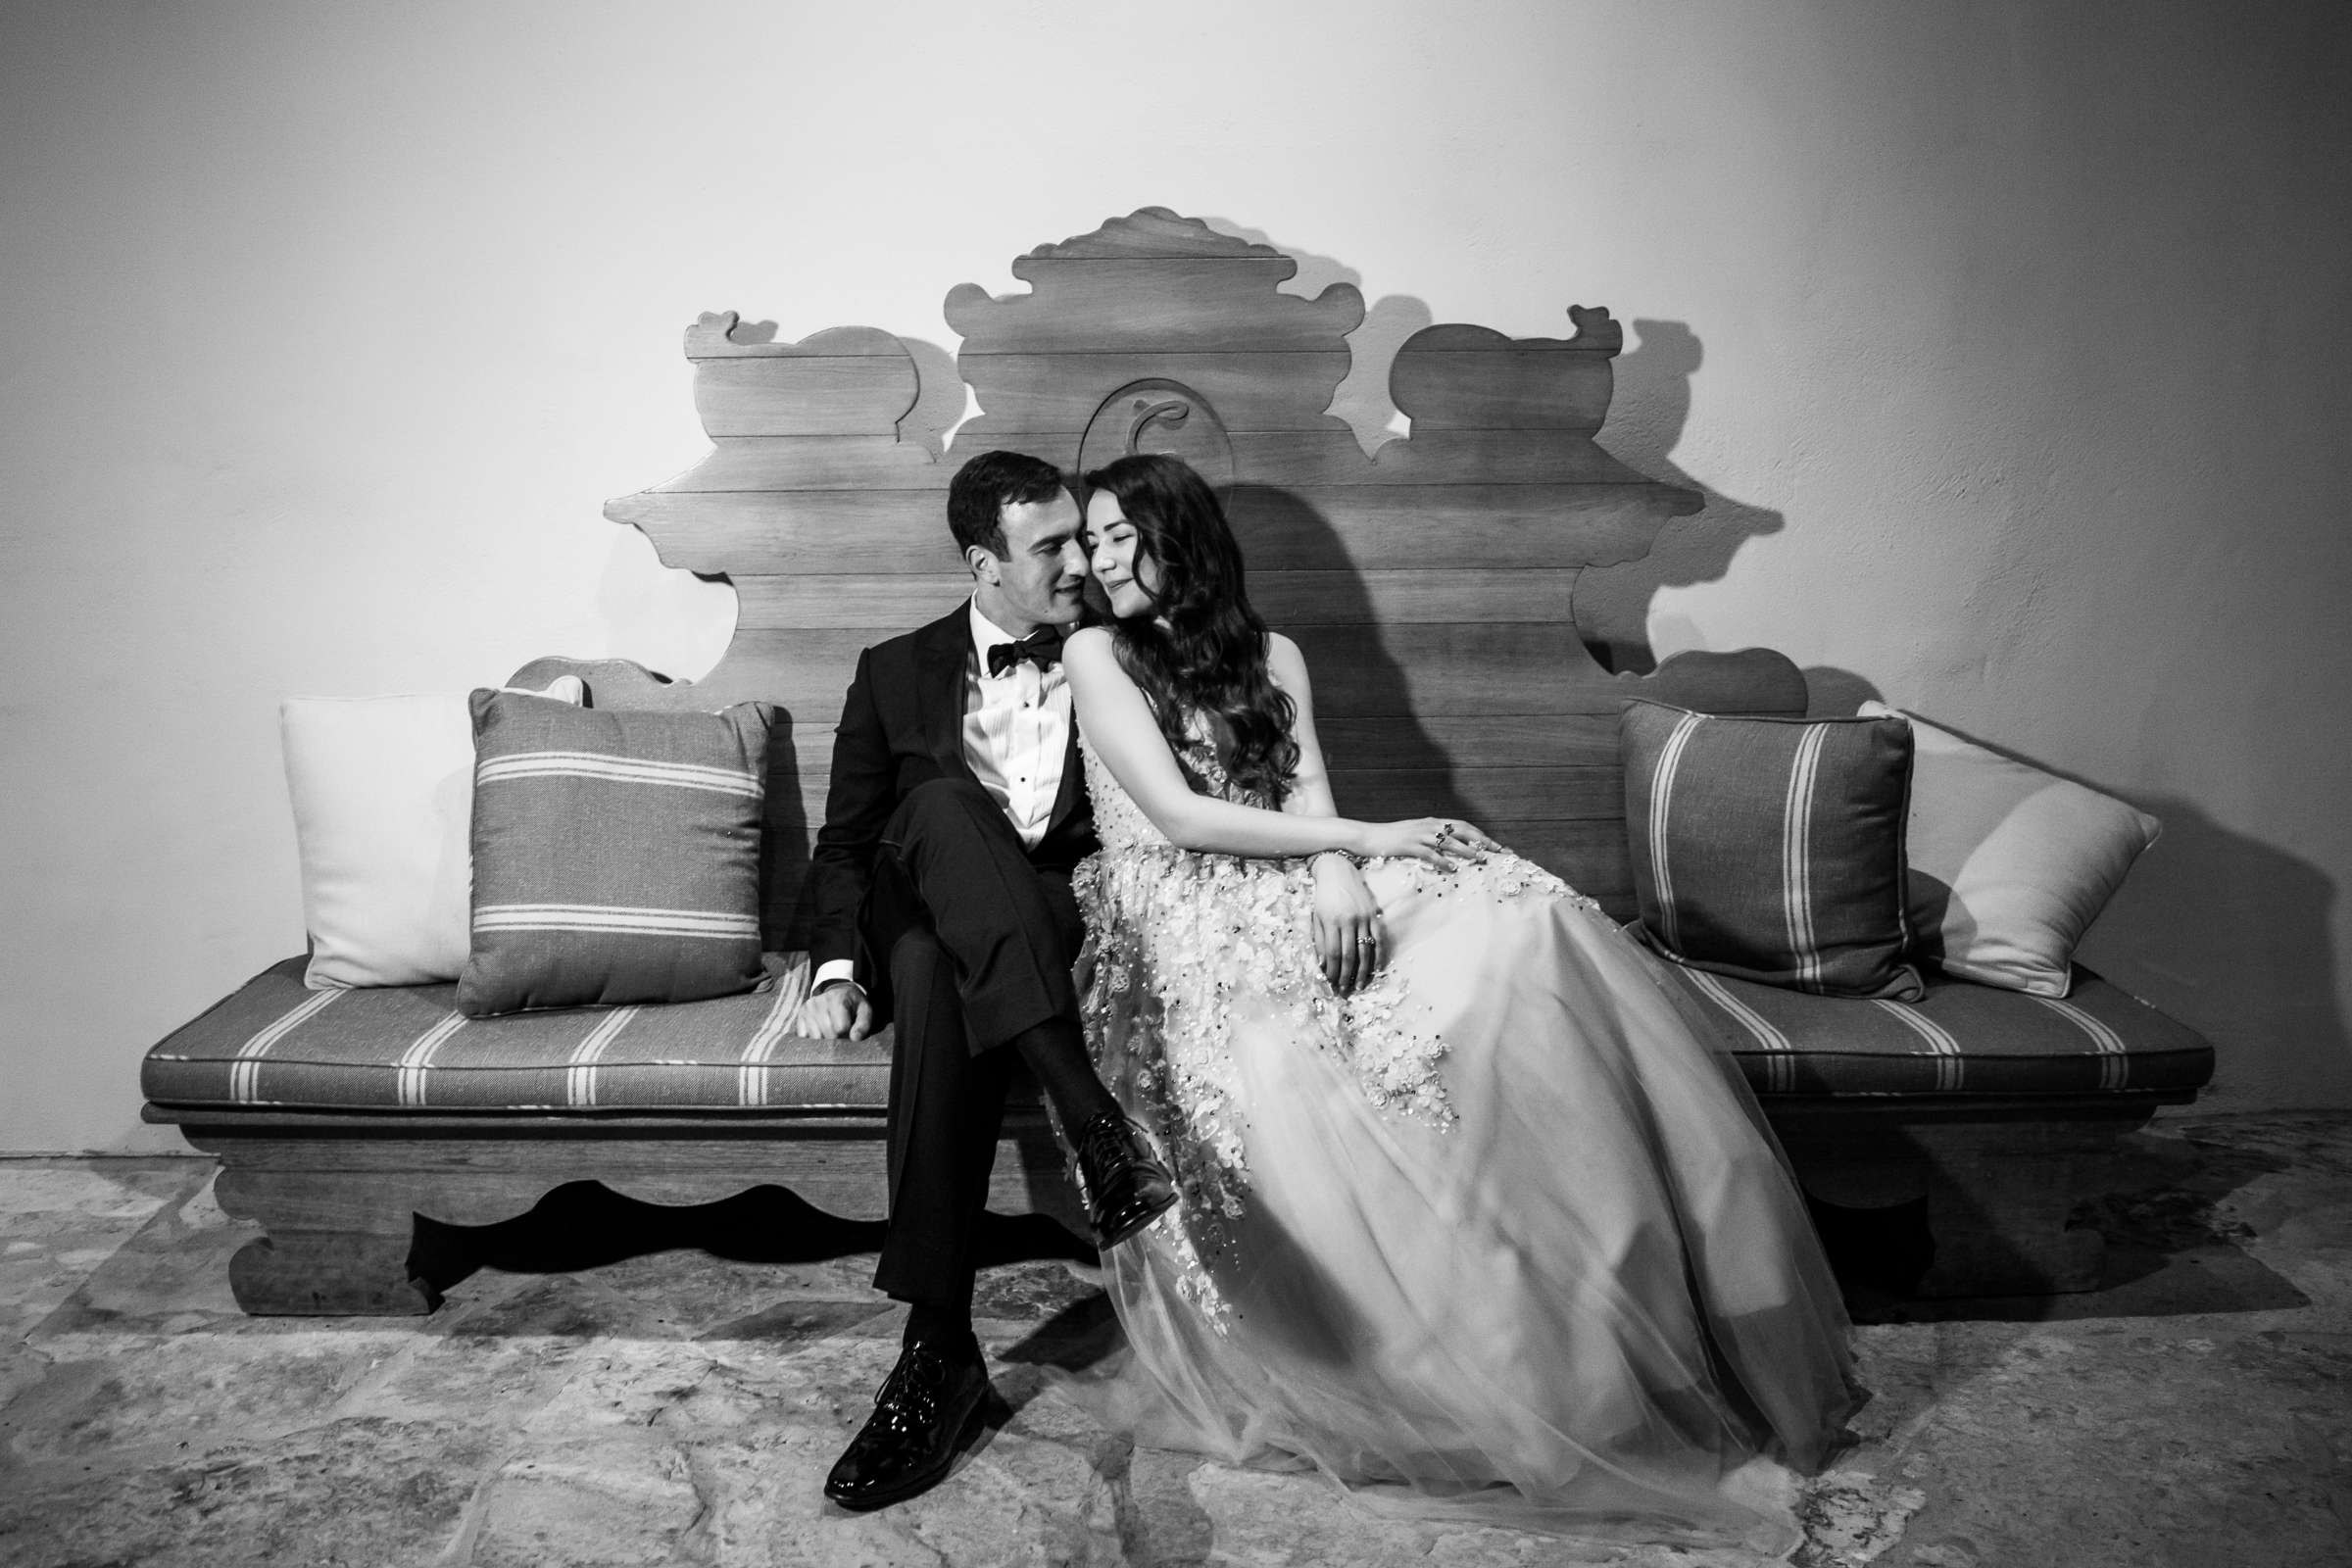 Estancia Wedding coordinated by Sweet Blossom Weddings, Cathalina and Alain Wedding Photo #32 by True Photography